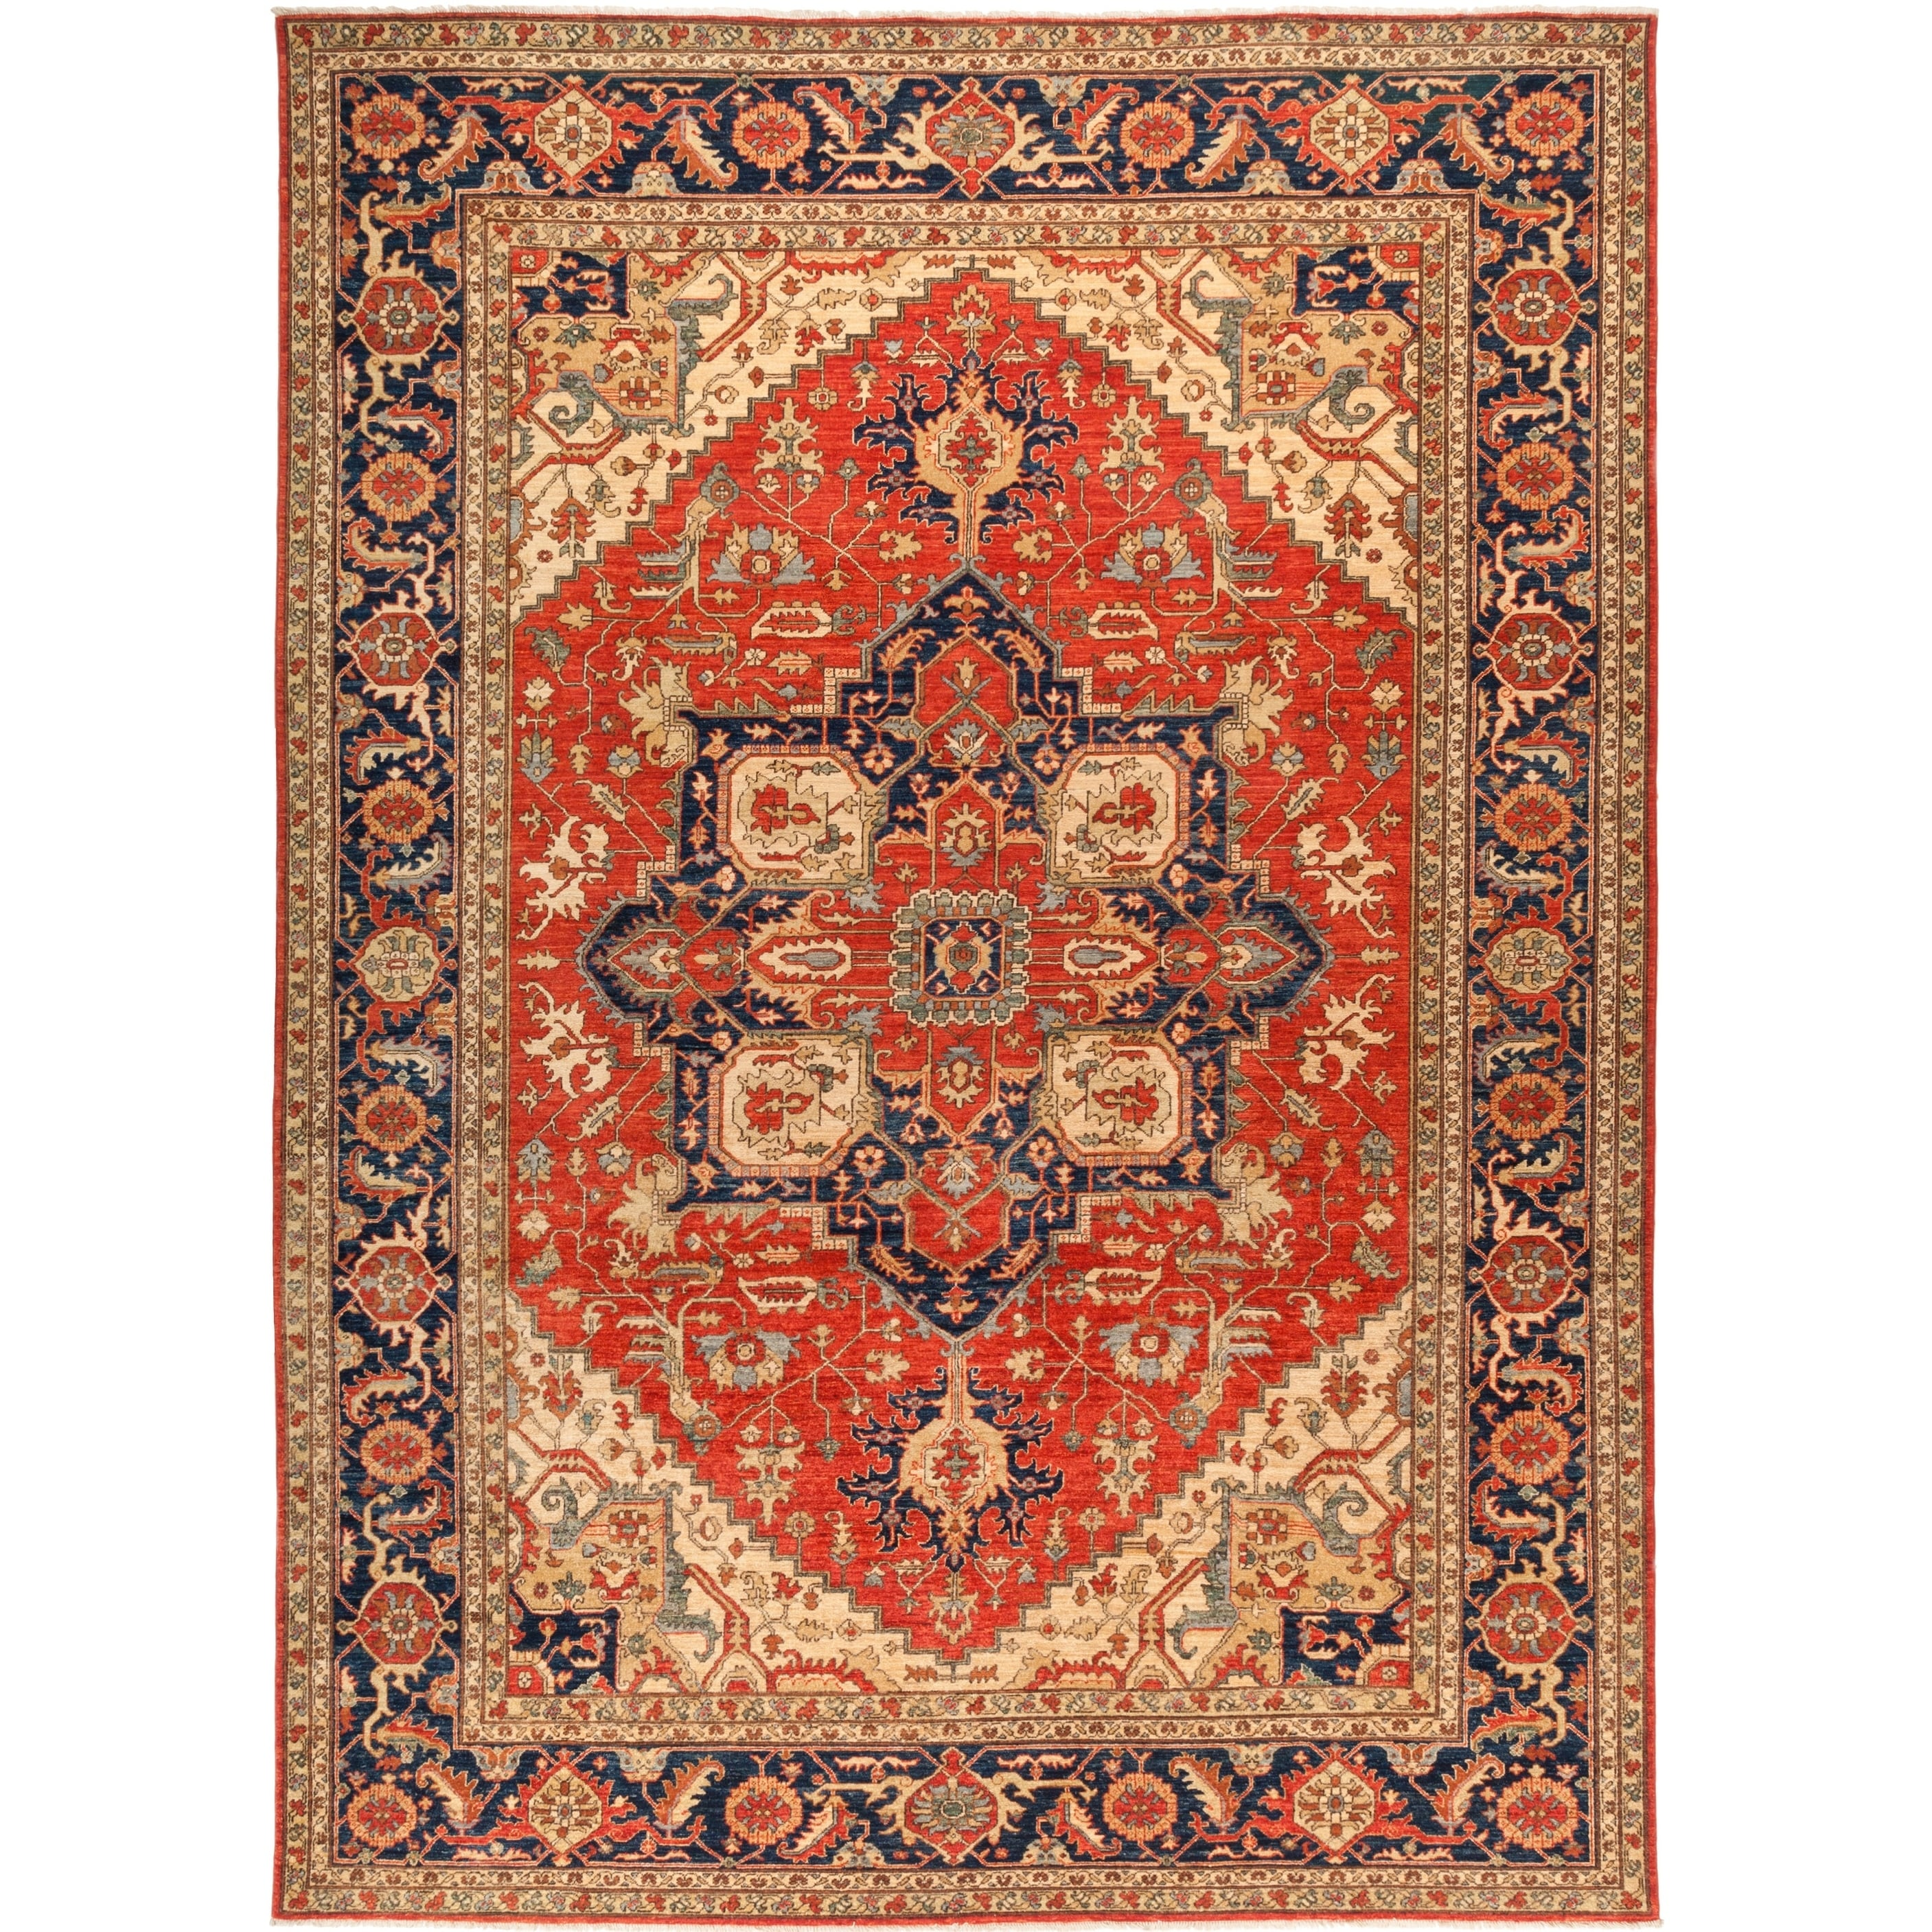 Serapi Classic Red Area Rug 10 4 X 14 3 Red 10 4 X 14 3 Wool Oriental Solo Rugs Rugs Area Rugs